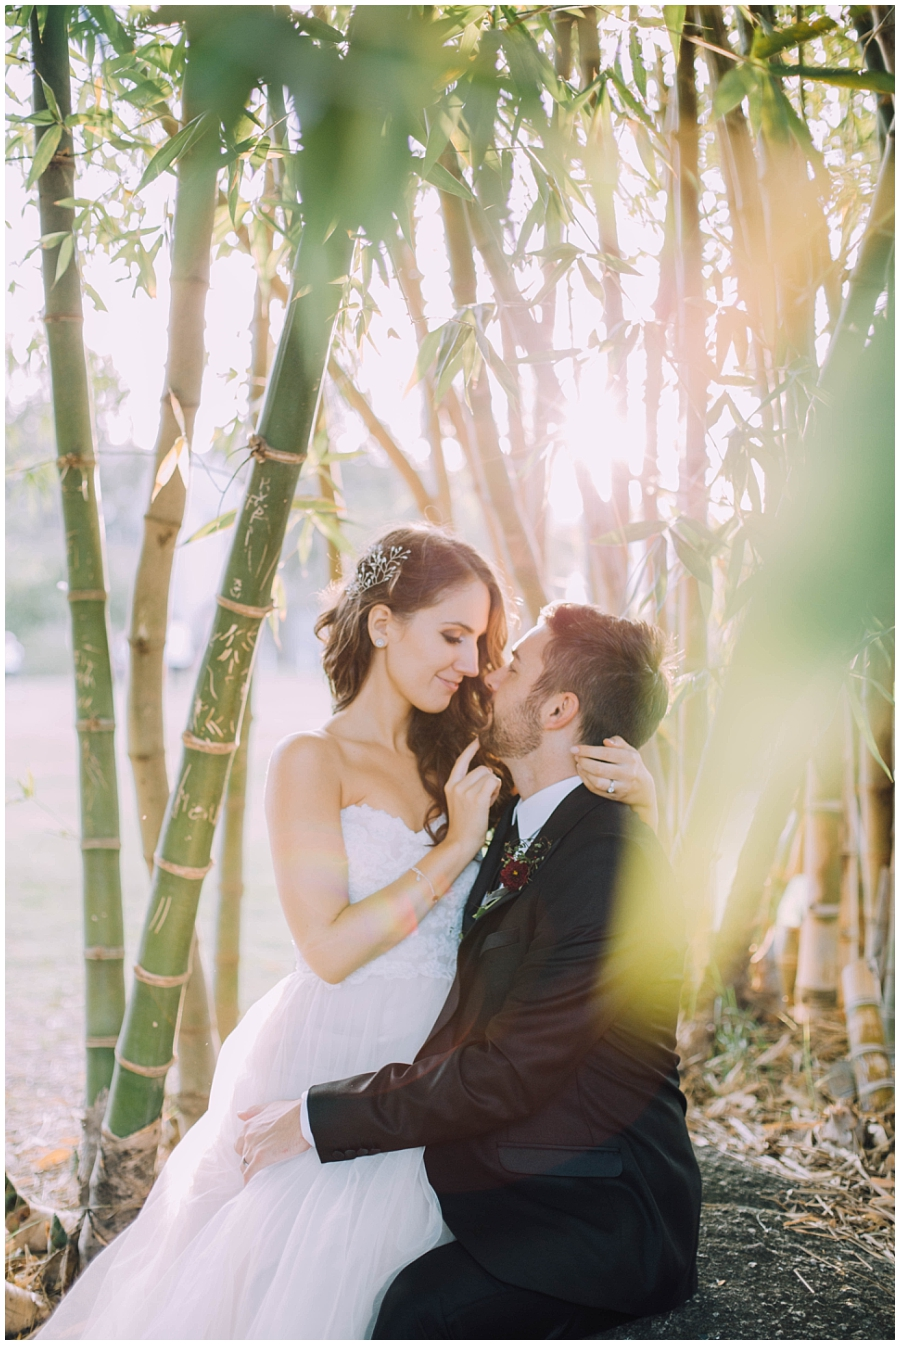 Ronel Kruger Cape Town Wedding and Lifestyle Photographer_6616.jpg